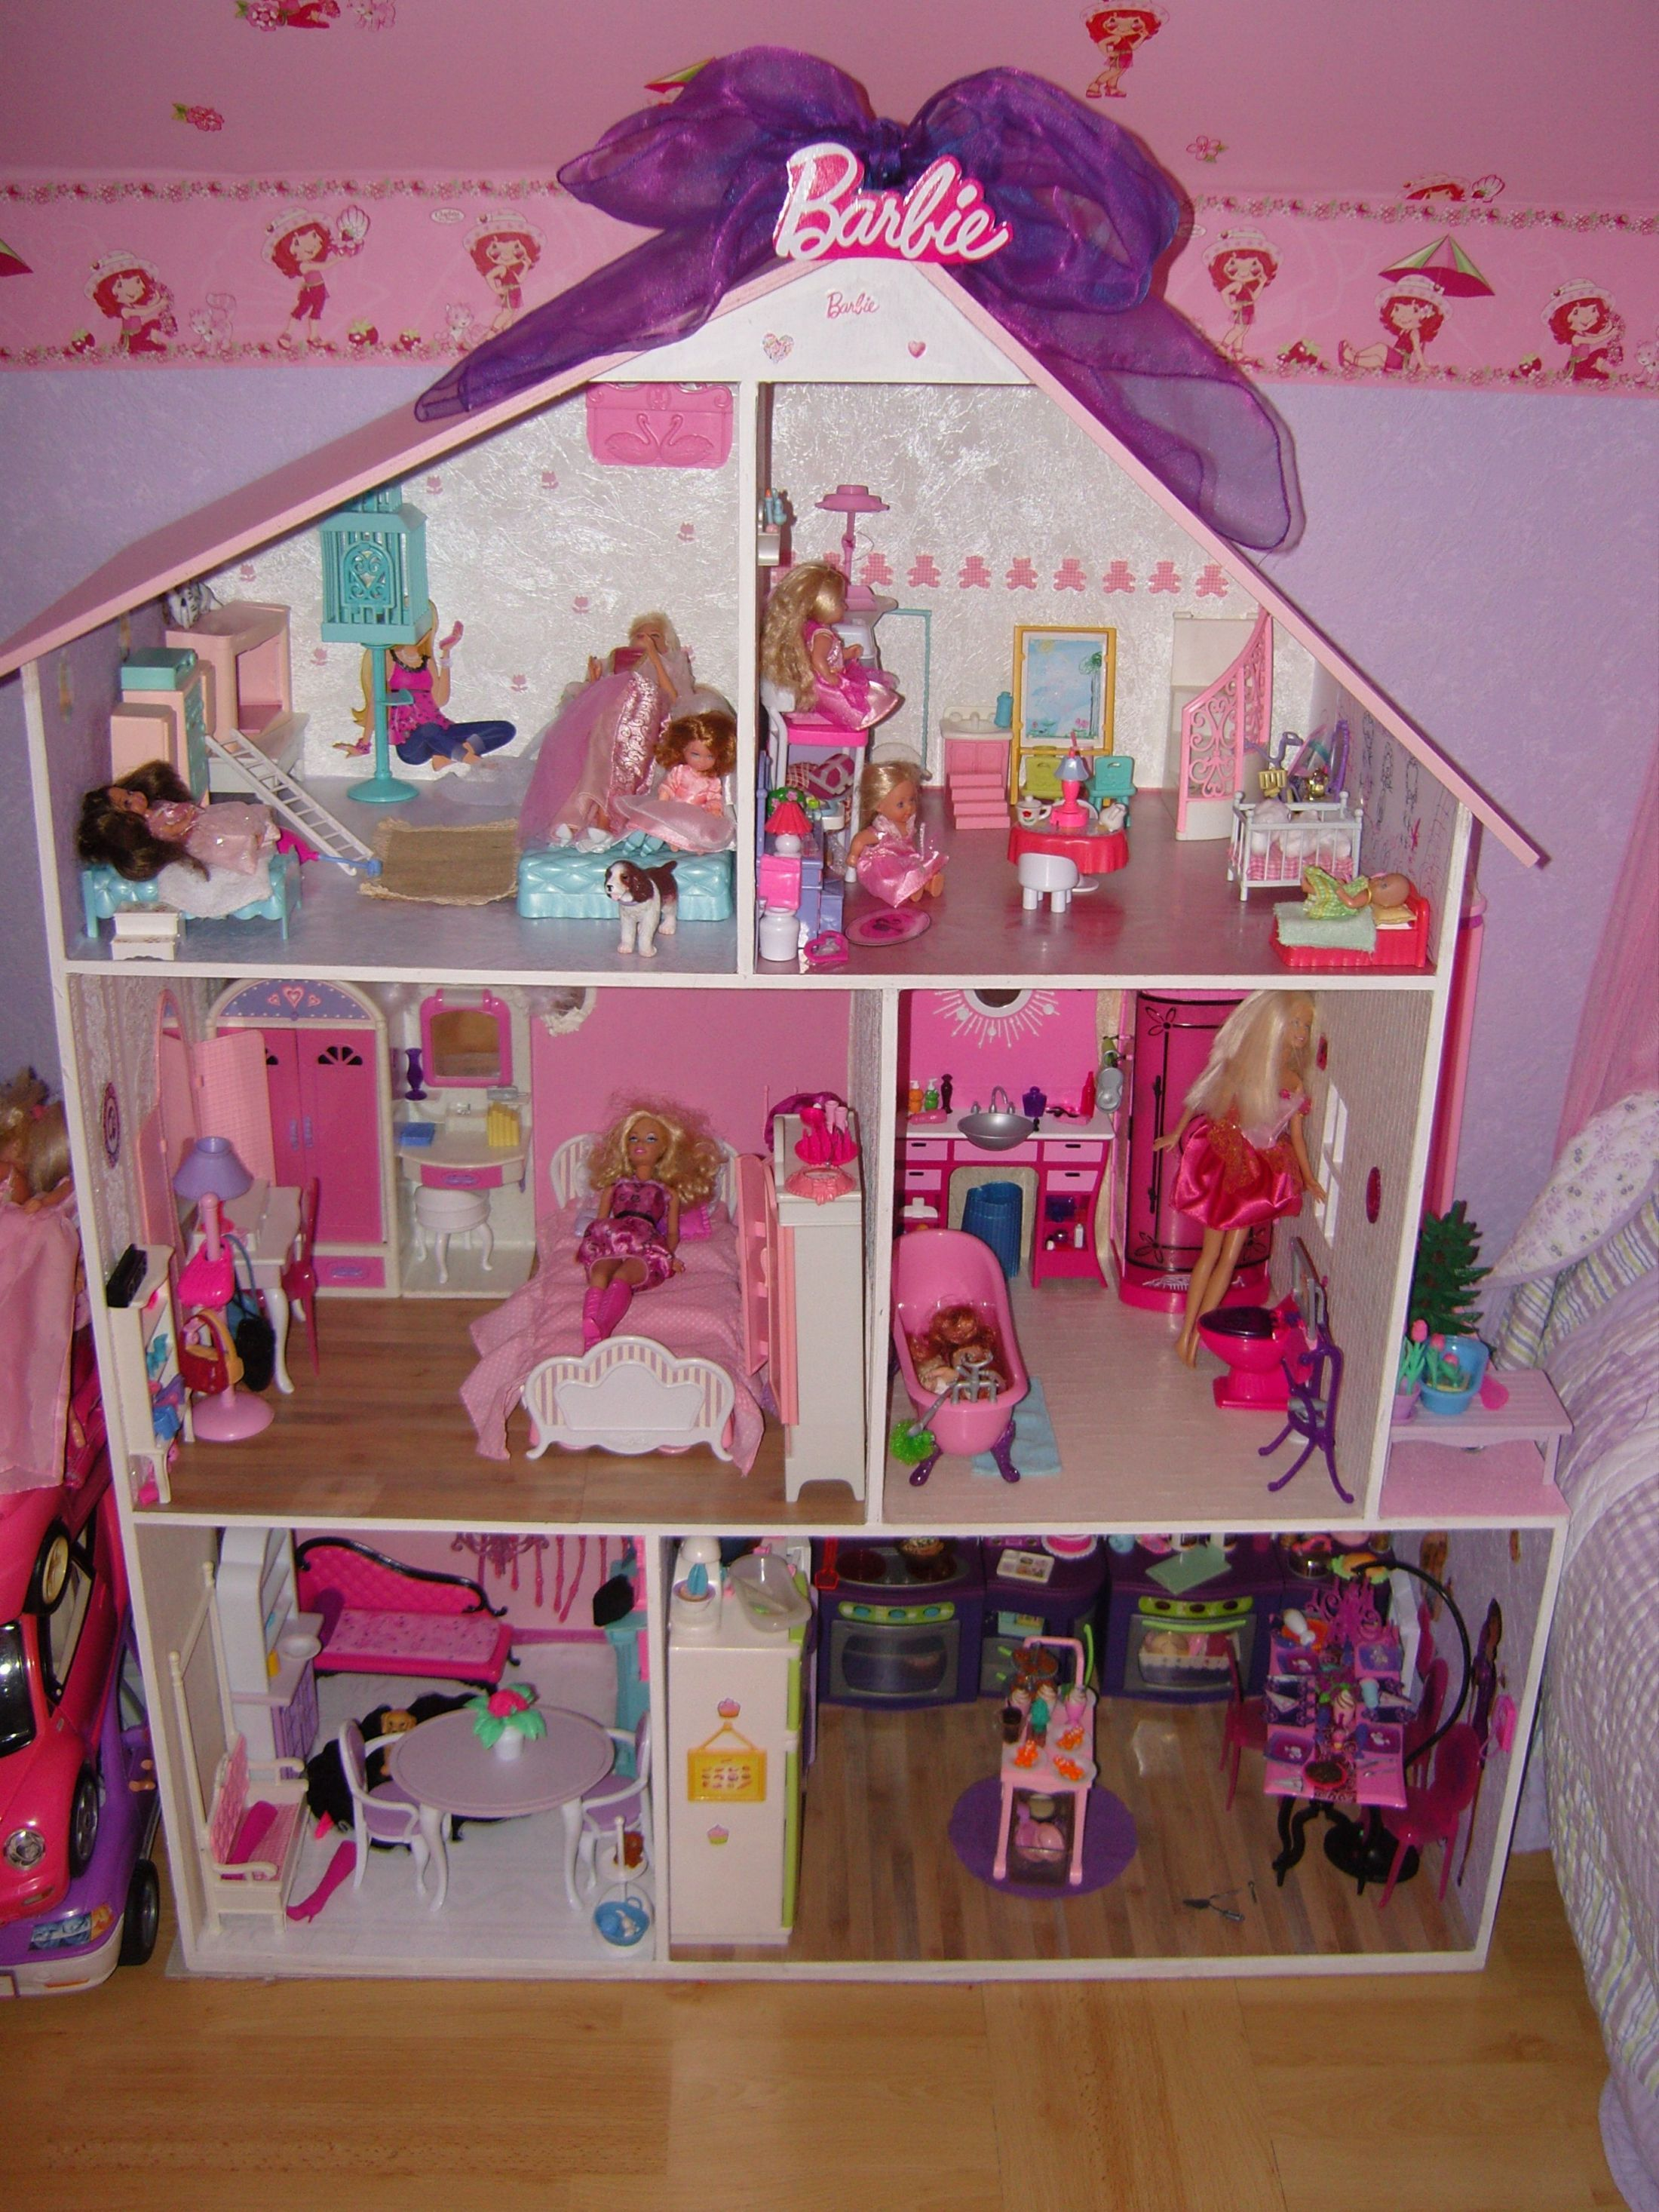 comment decorer une maison de barbie. Black Bedroom Furniture Sets. Home Design Ideas